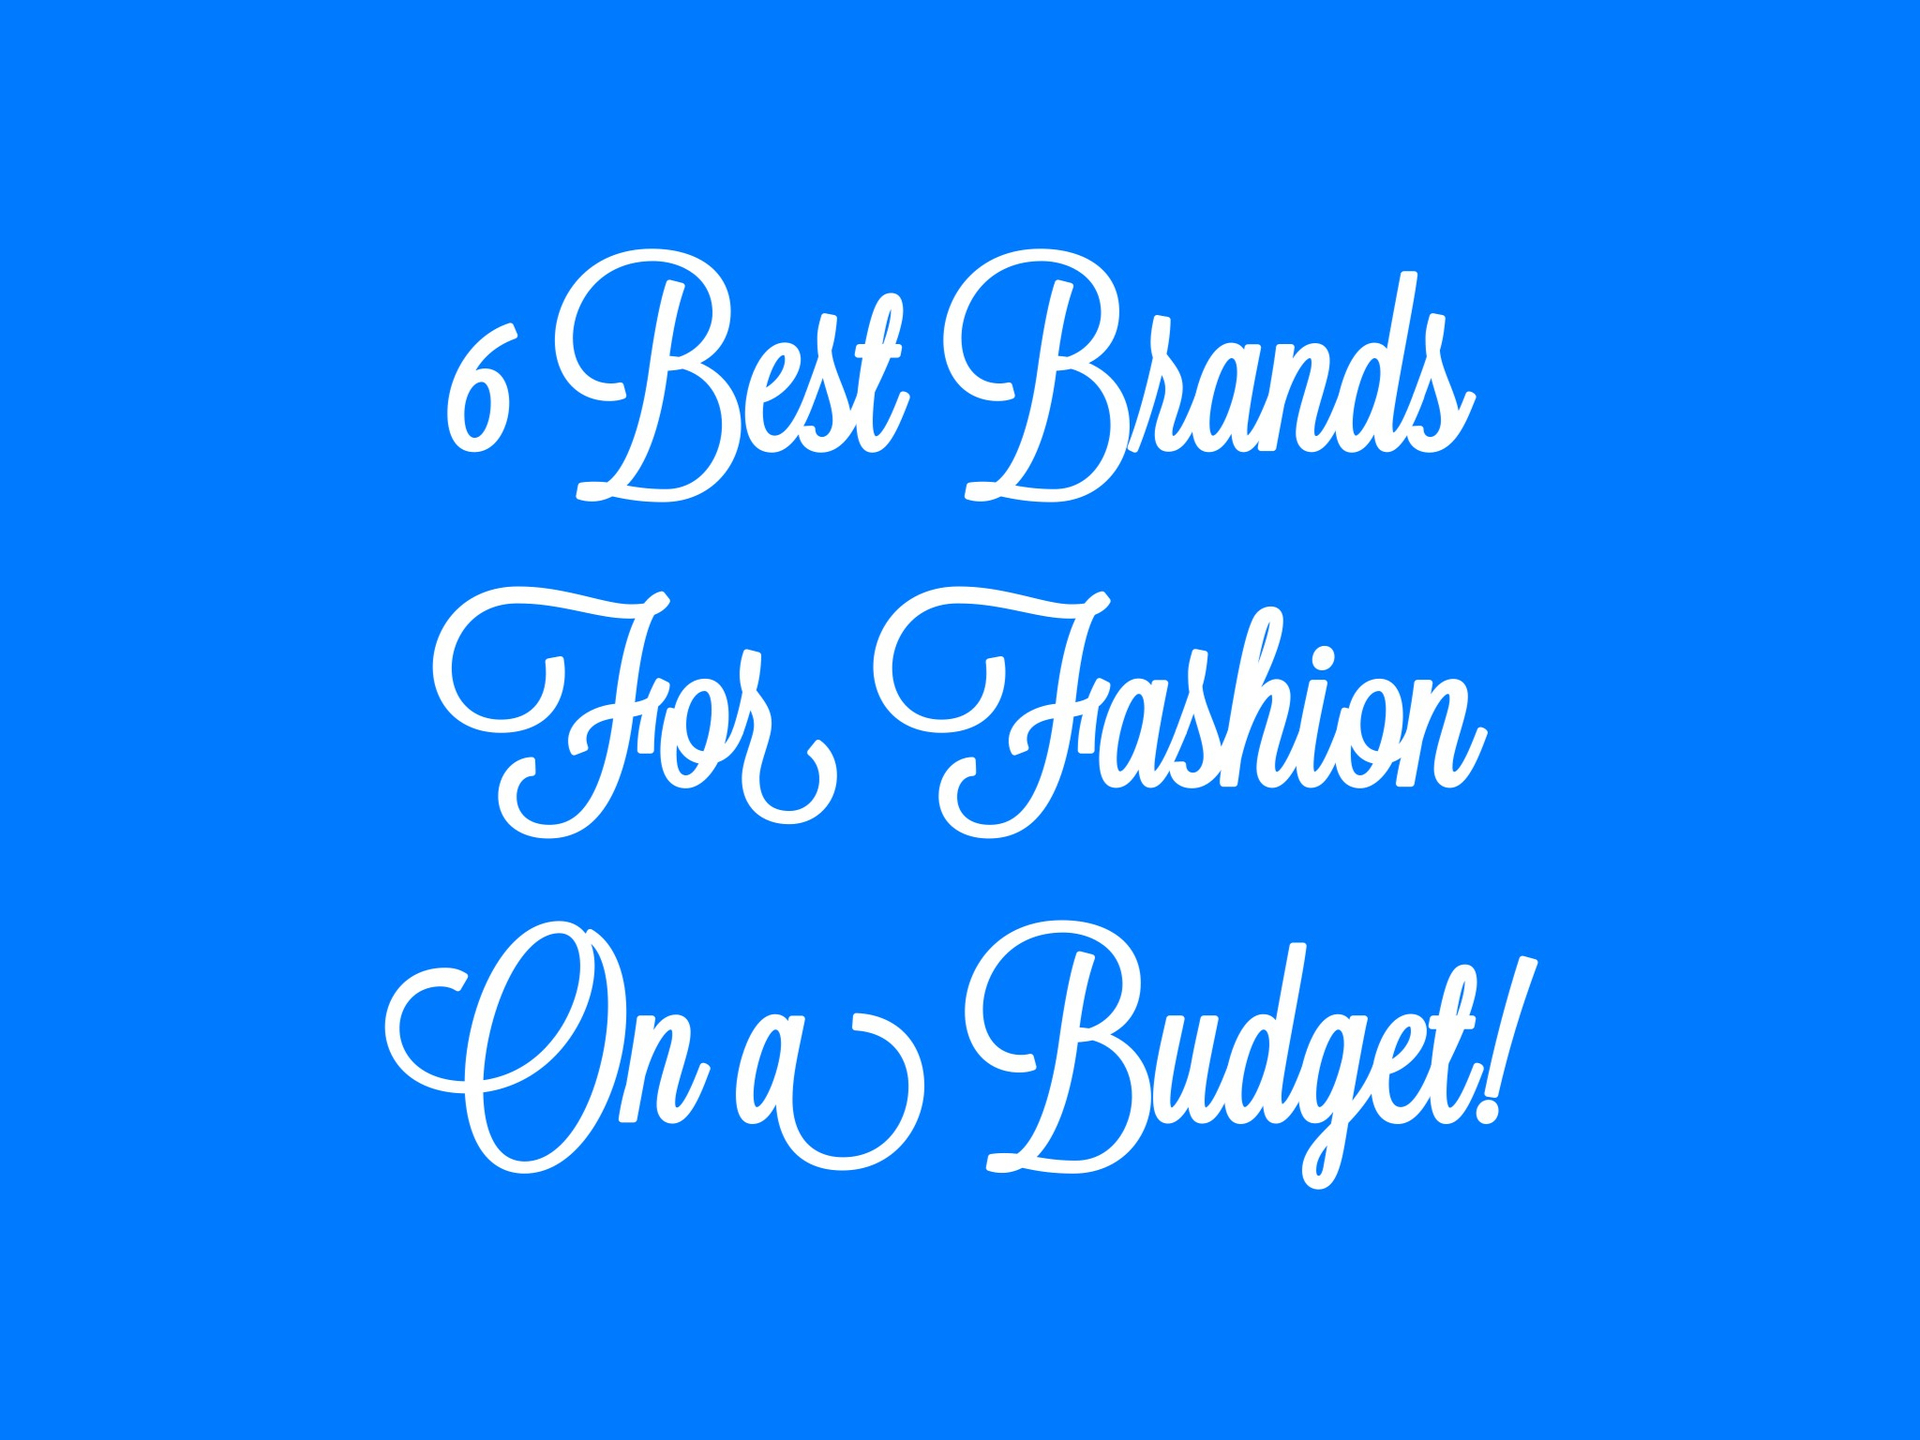 6 Best Brands For Fashion On A Budget image